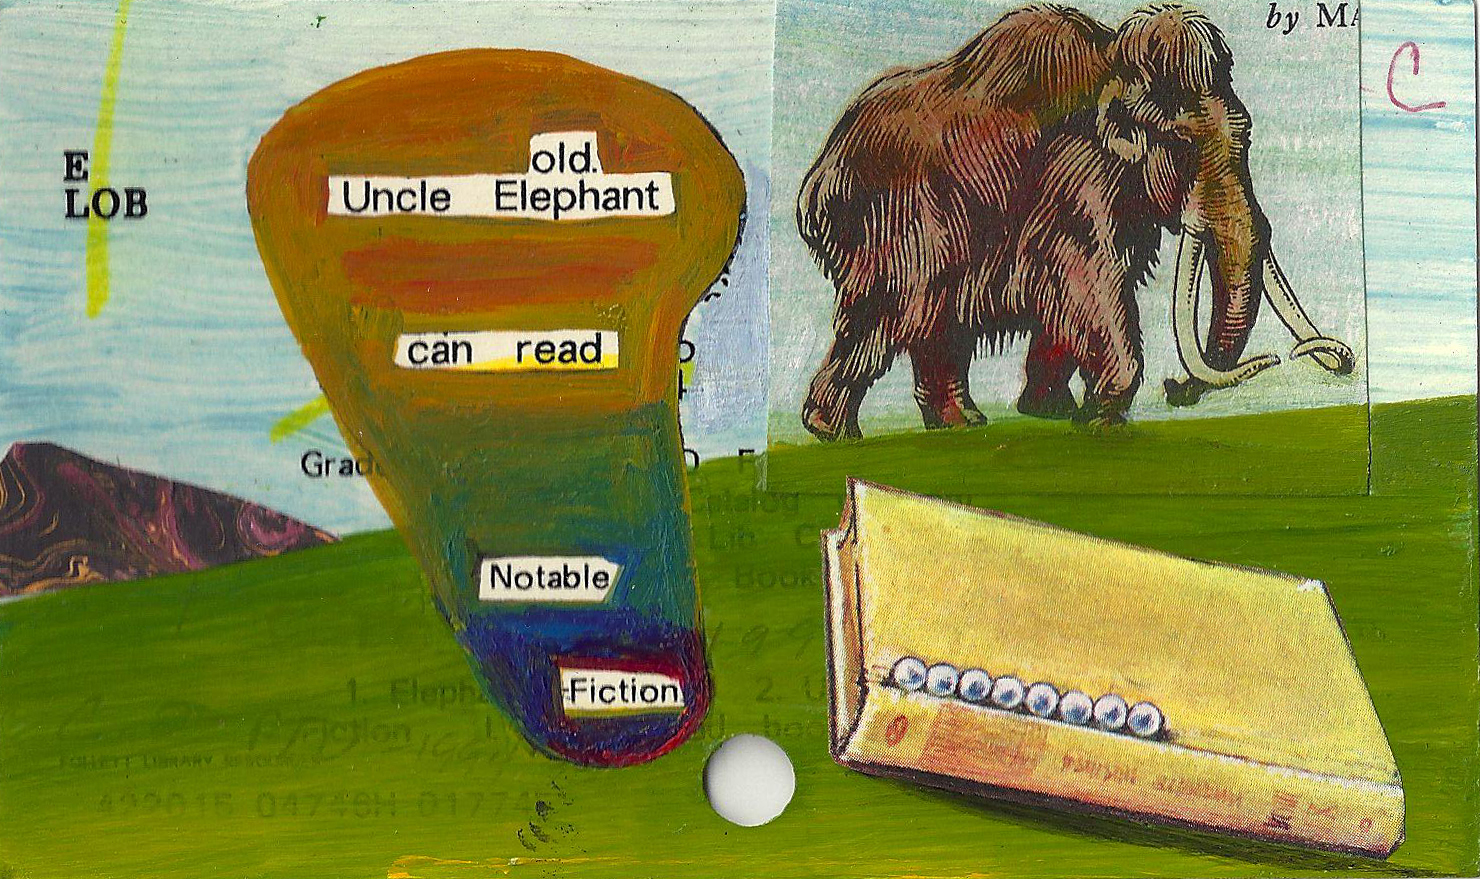 old uncle elephant.jpg